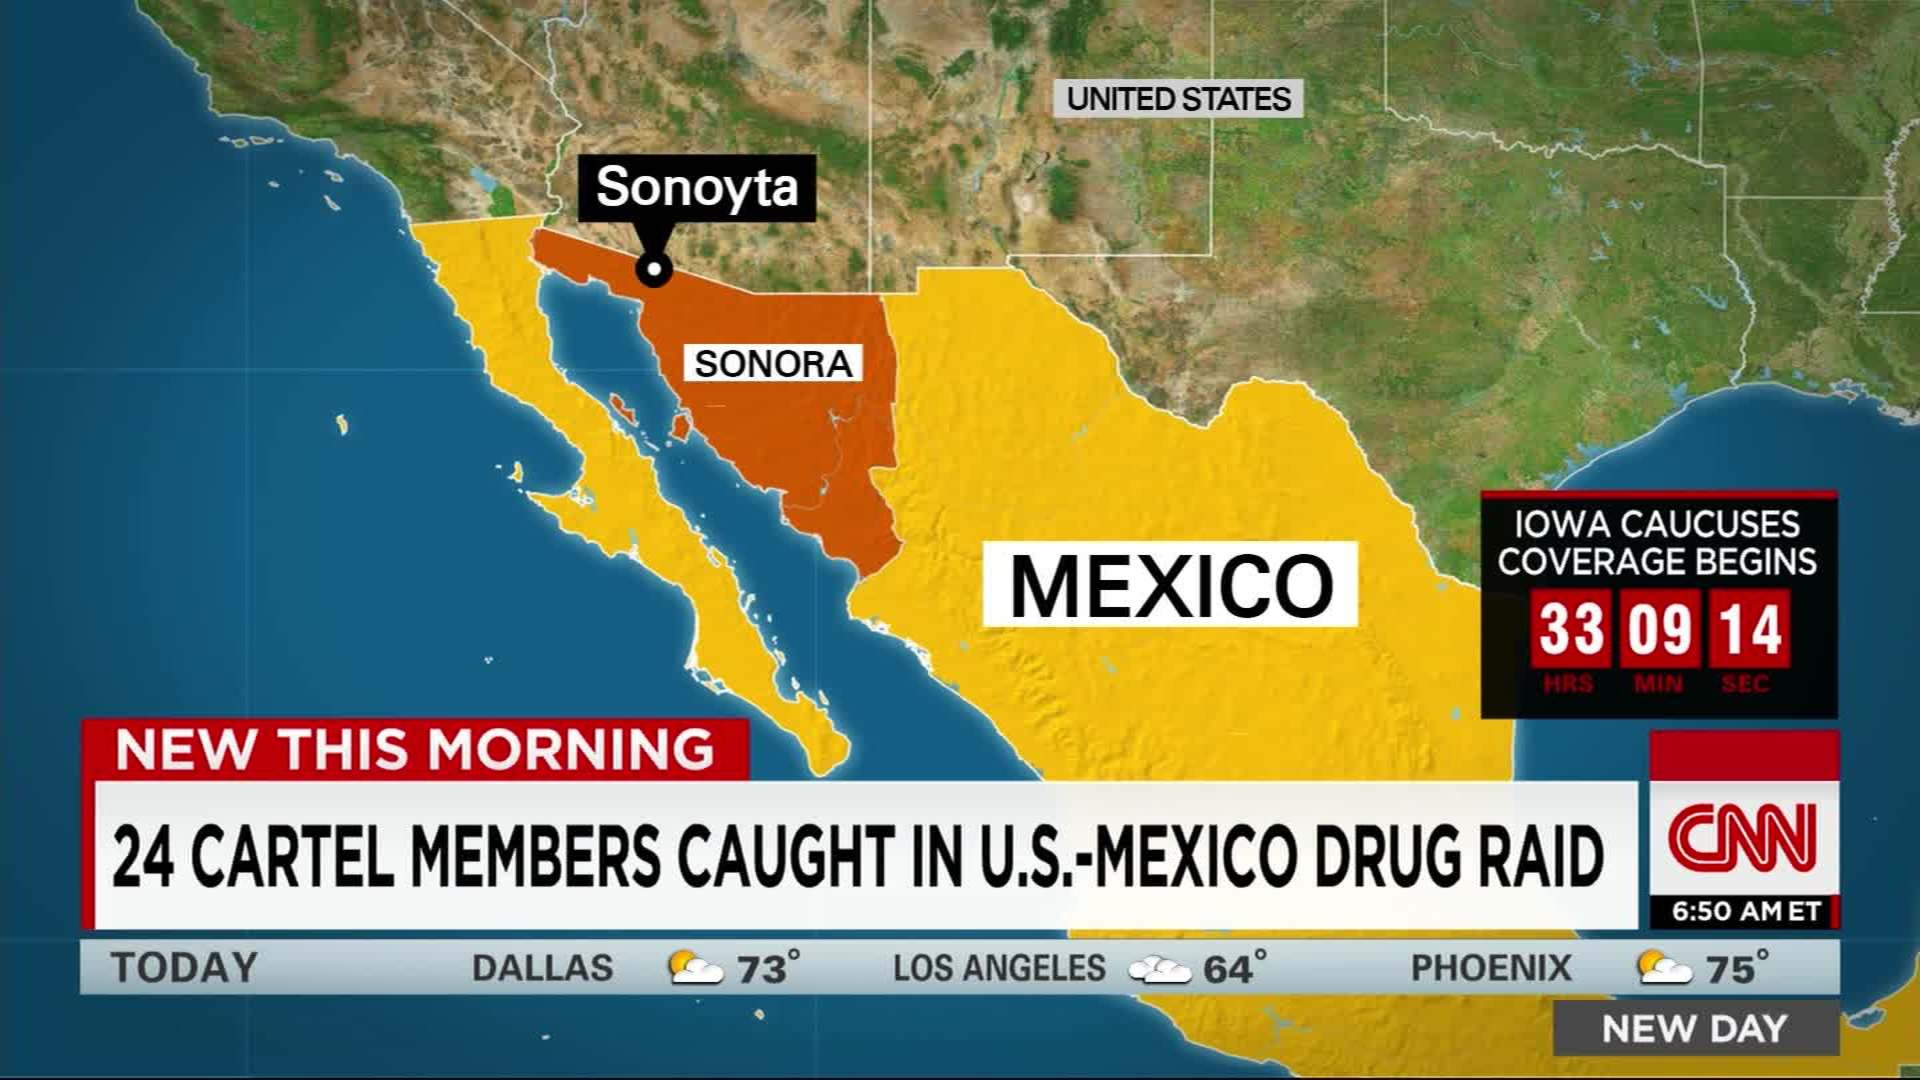 24 cartel members arrested in U S -Mexico border raid - CNN